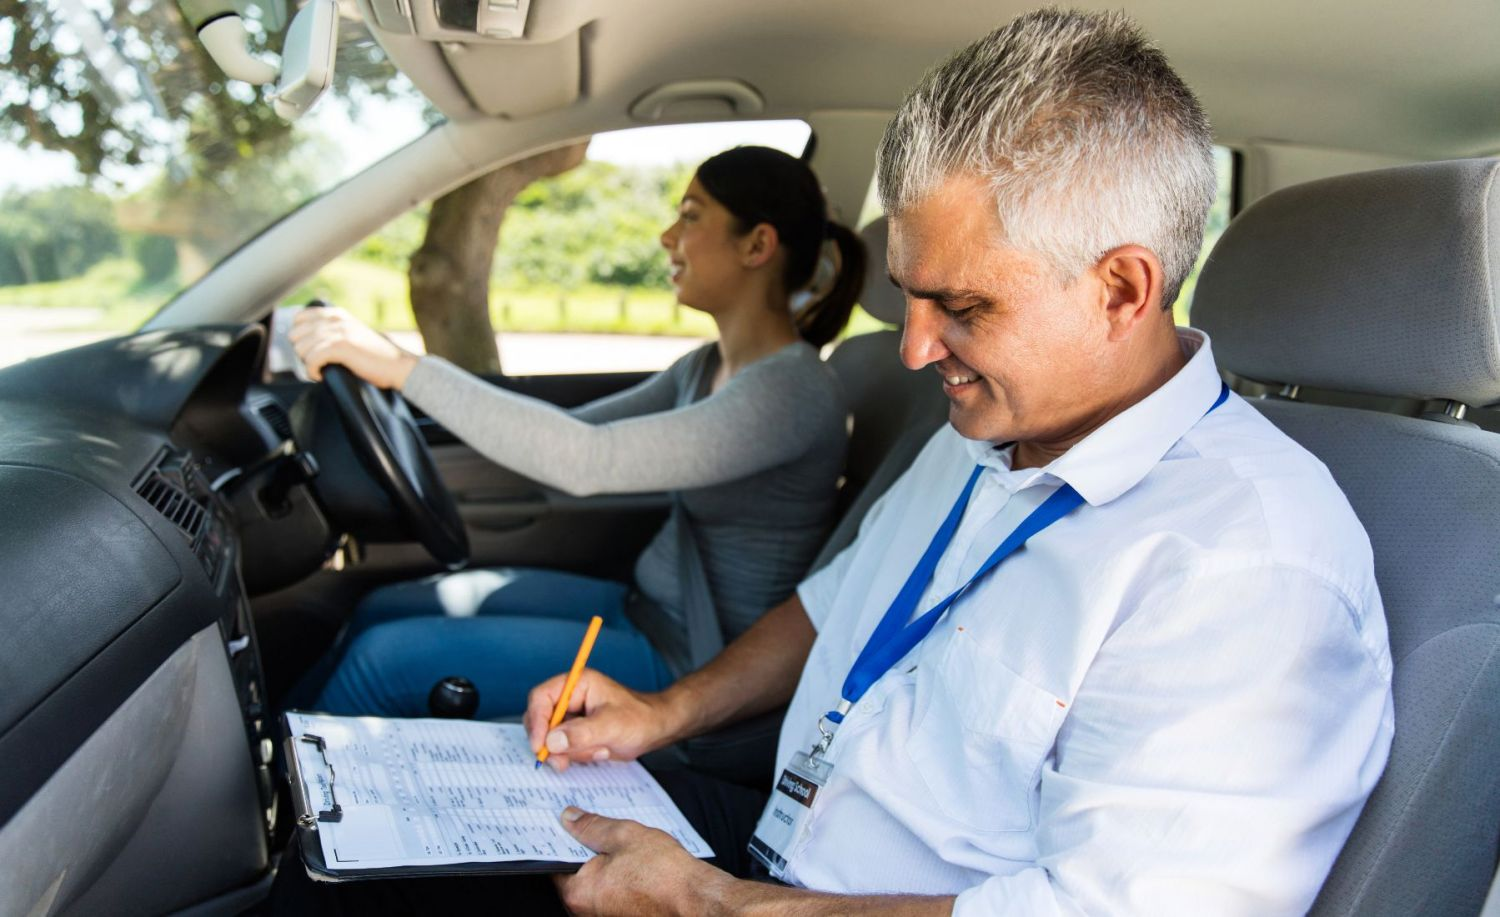 Learner drivers in the UK